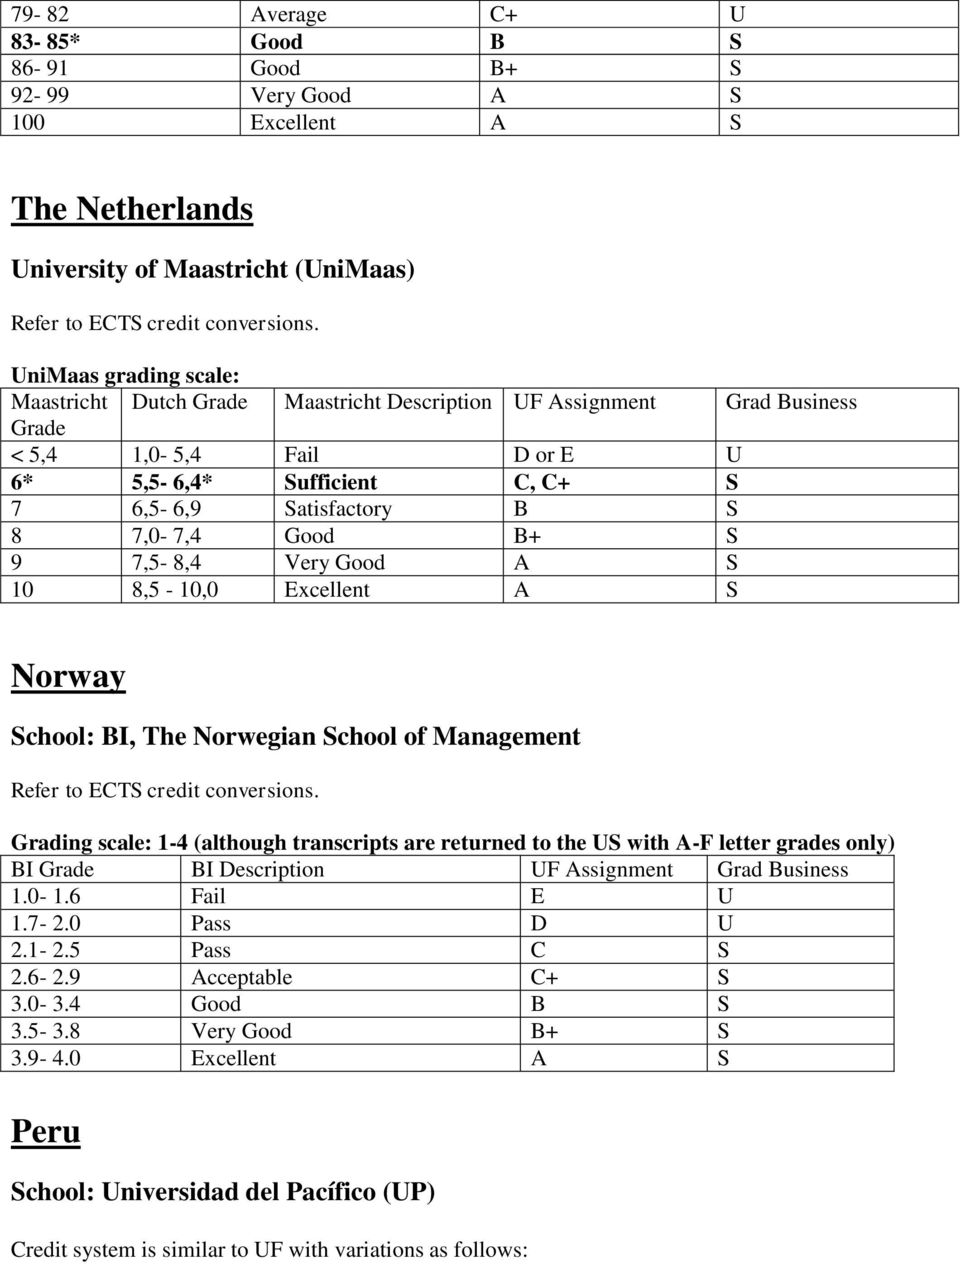 S Norway School: BI, The Norwegian School of Management Grading scale: 1-4 (although transcripts are returned to the US with A-F letter grades only) BI Grade BI Description UF Assignment Grad